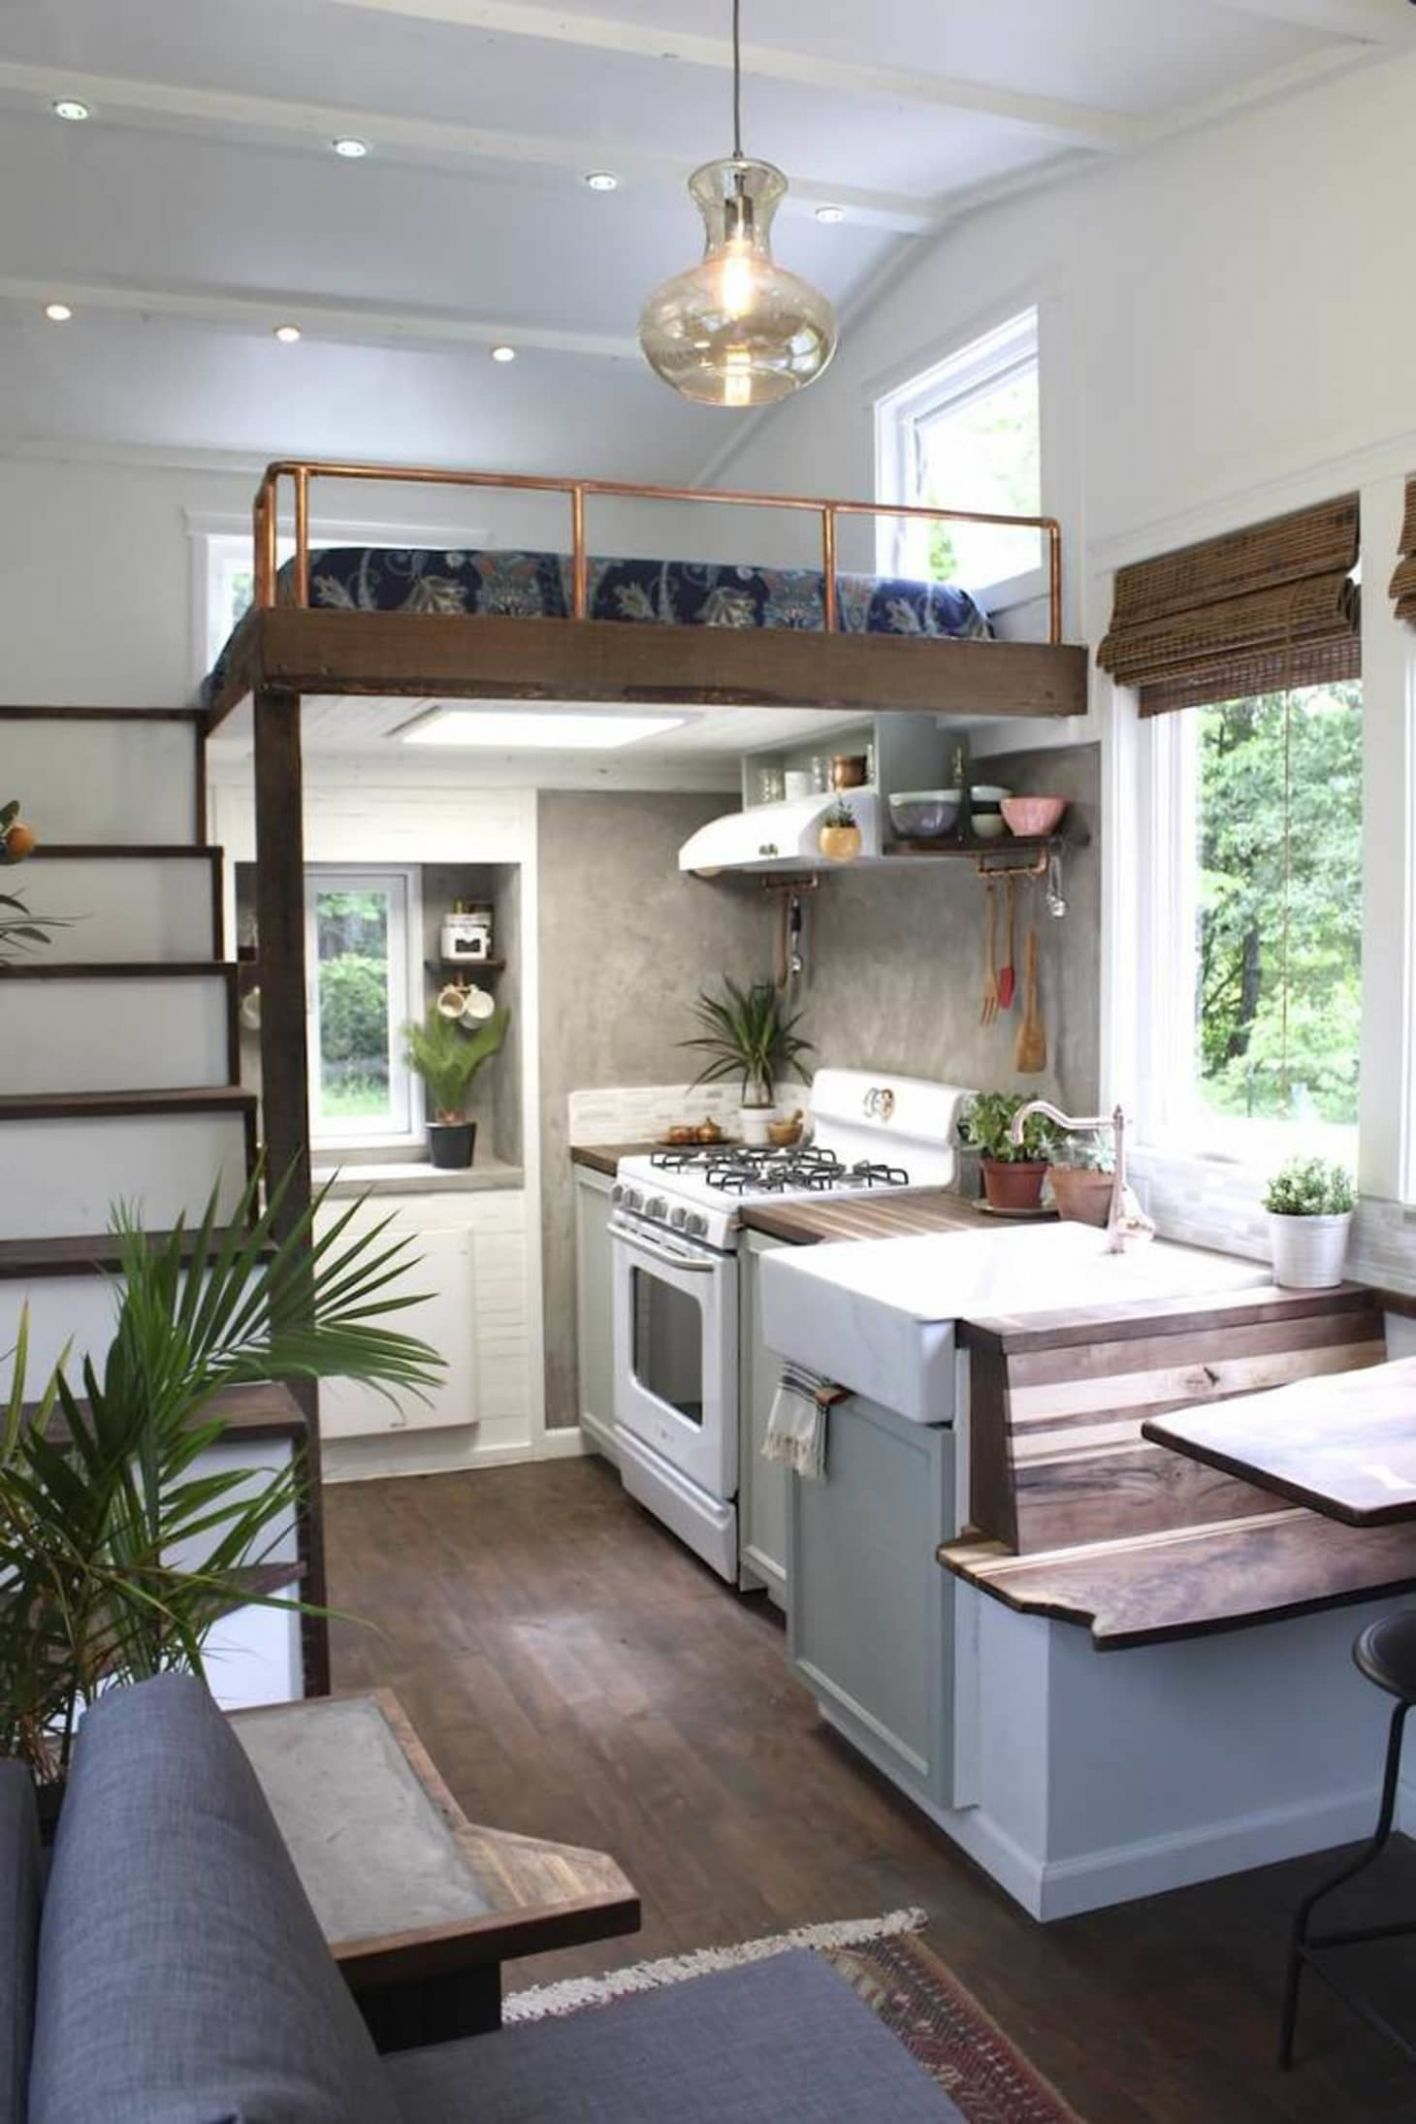 11 Kitchen Storage Ideas to Steal from Tiny Houses | Kitchn - tiny house kitchen ideas